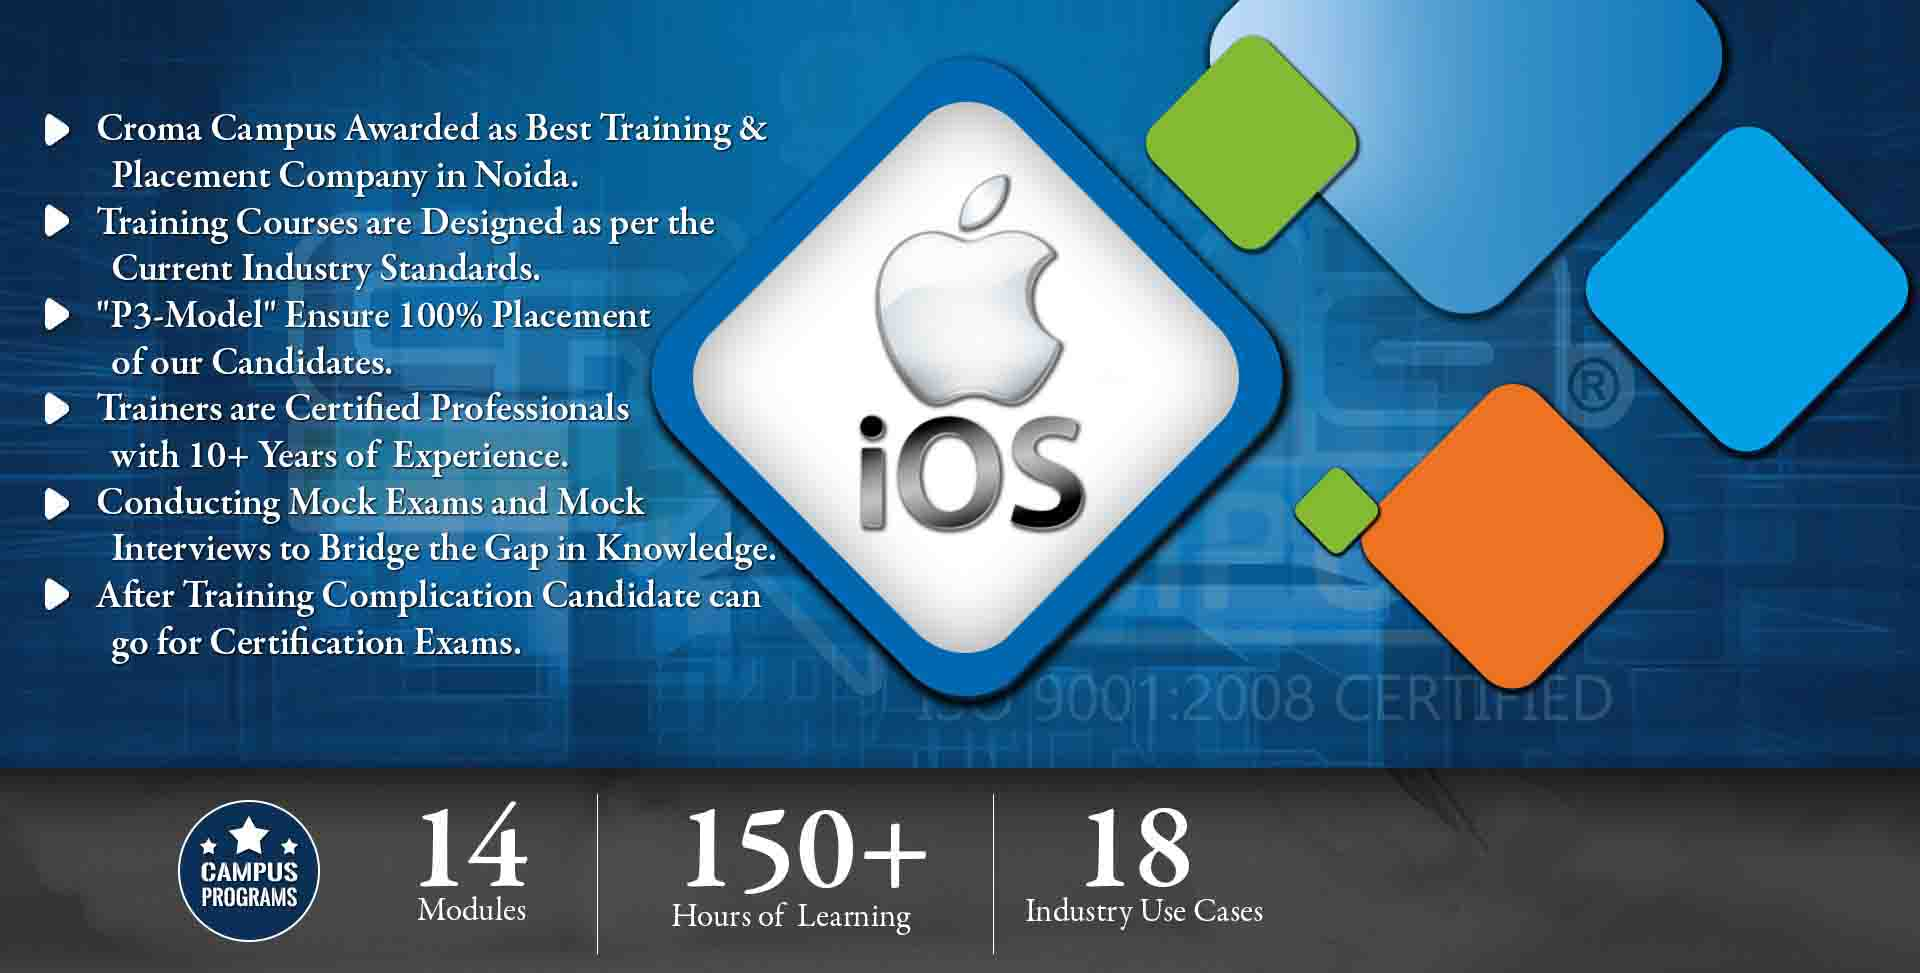 Ios training in gurgaon best ios training institute in gurgaon ios training in gurgaon croma campus fandeluxe Gallery